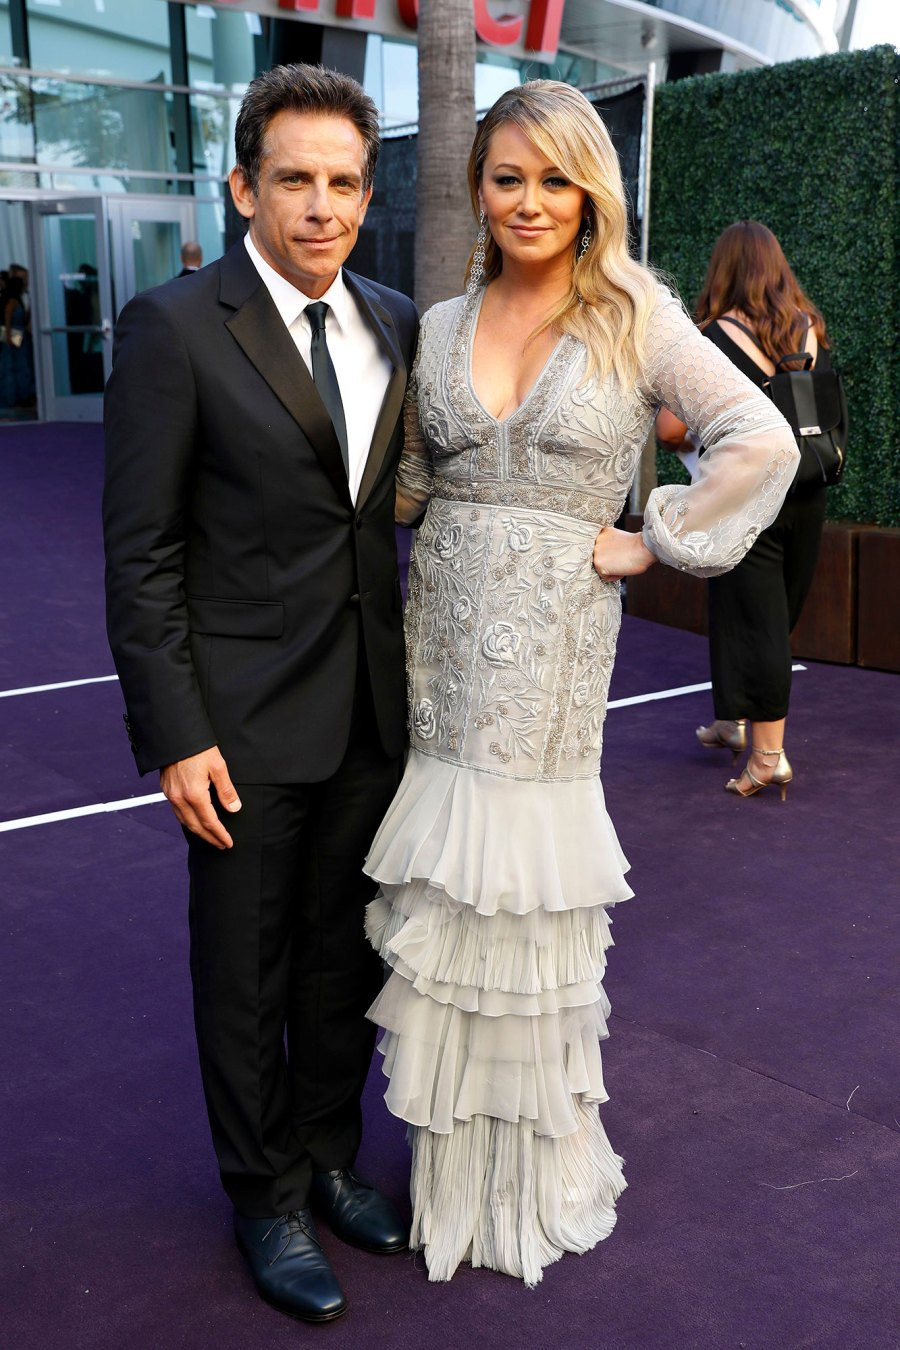 Ben Stiller and Christine Taylor What You Didn't See on TV Gallery Emmys 2019